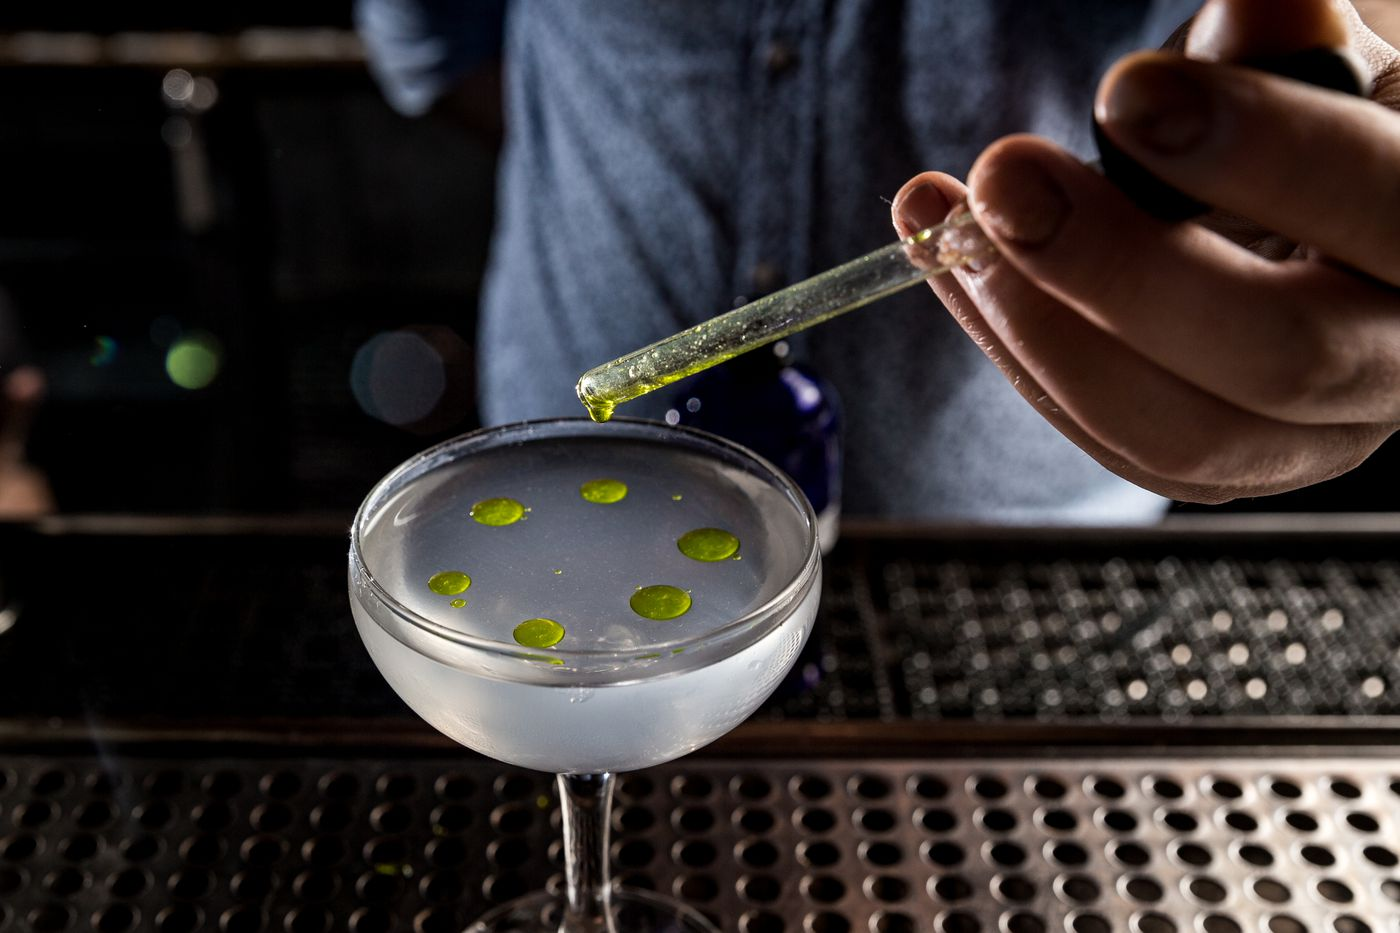 Franklin Bar's Little Mister Good Fortune stars a snap-pea-infused tequila stirred with celery-infused pisco, Brennivín aquavit, salers, sweet vermouth, lemon cordial, and celery and orange bitters. Garnished with pickled red onion, the drink is finished with drops of cilantro oil.